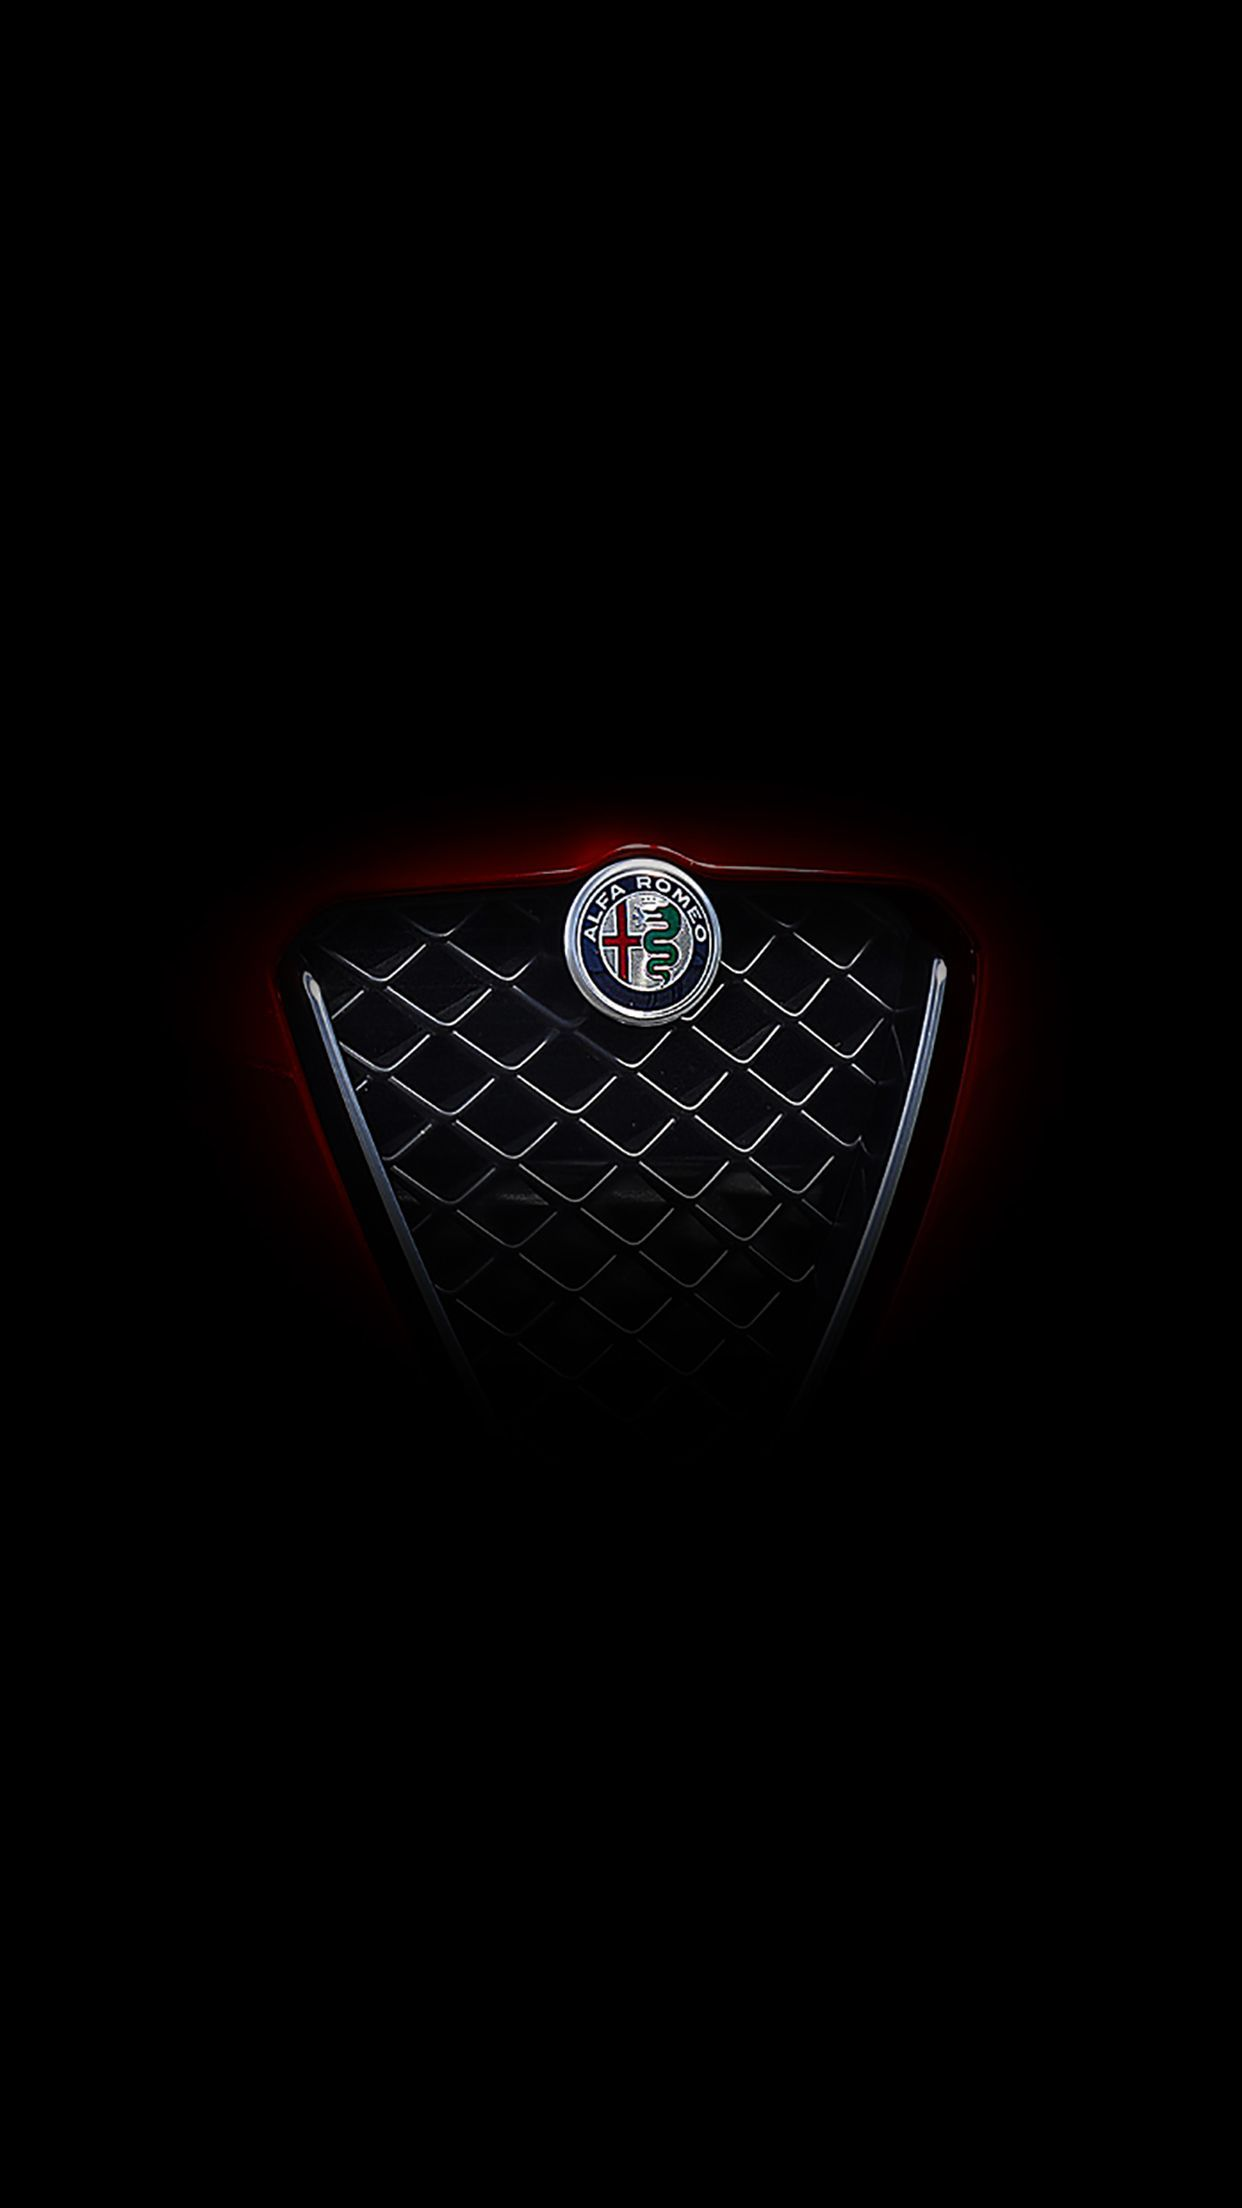 Alfa Romeo Iphone Wallpapers Top Free Alfa Romeo Iphone